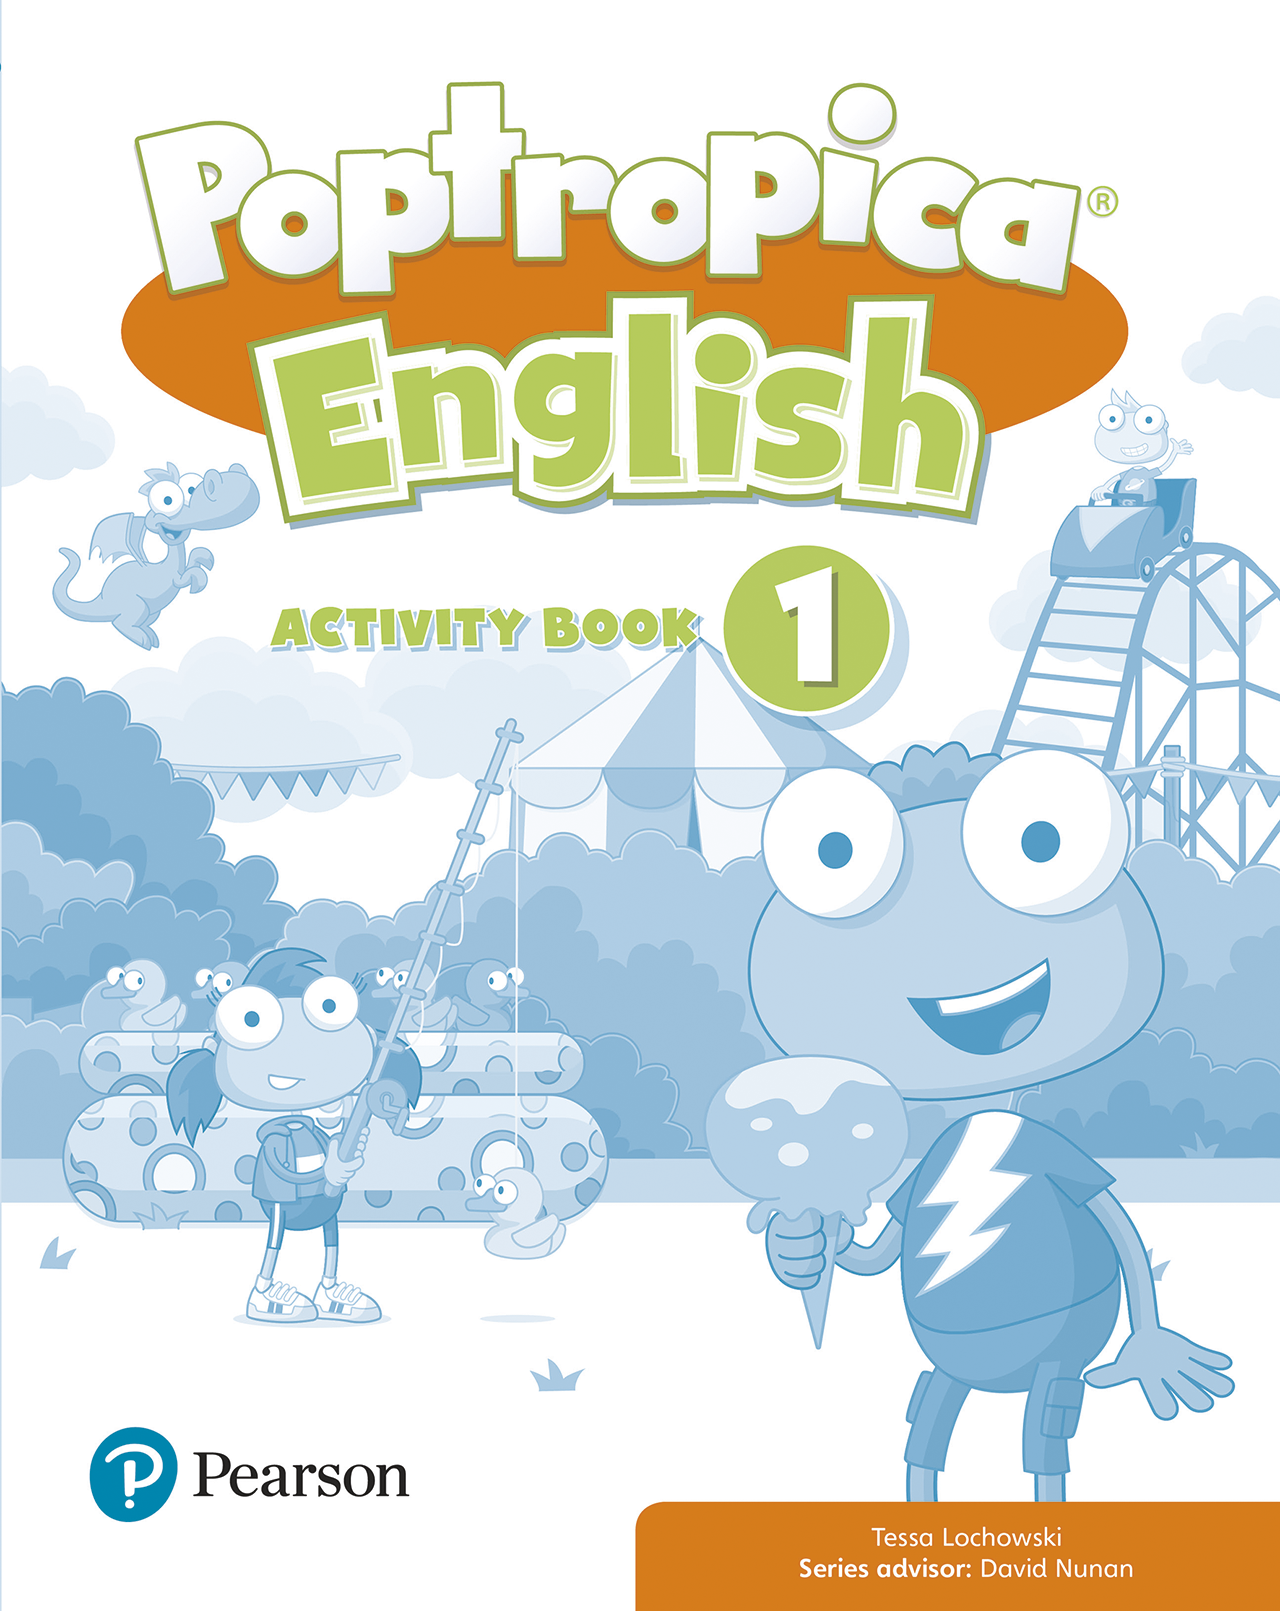 Activity Book with Vocabulary App